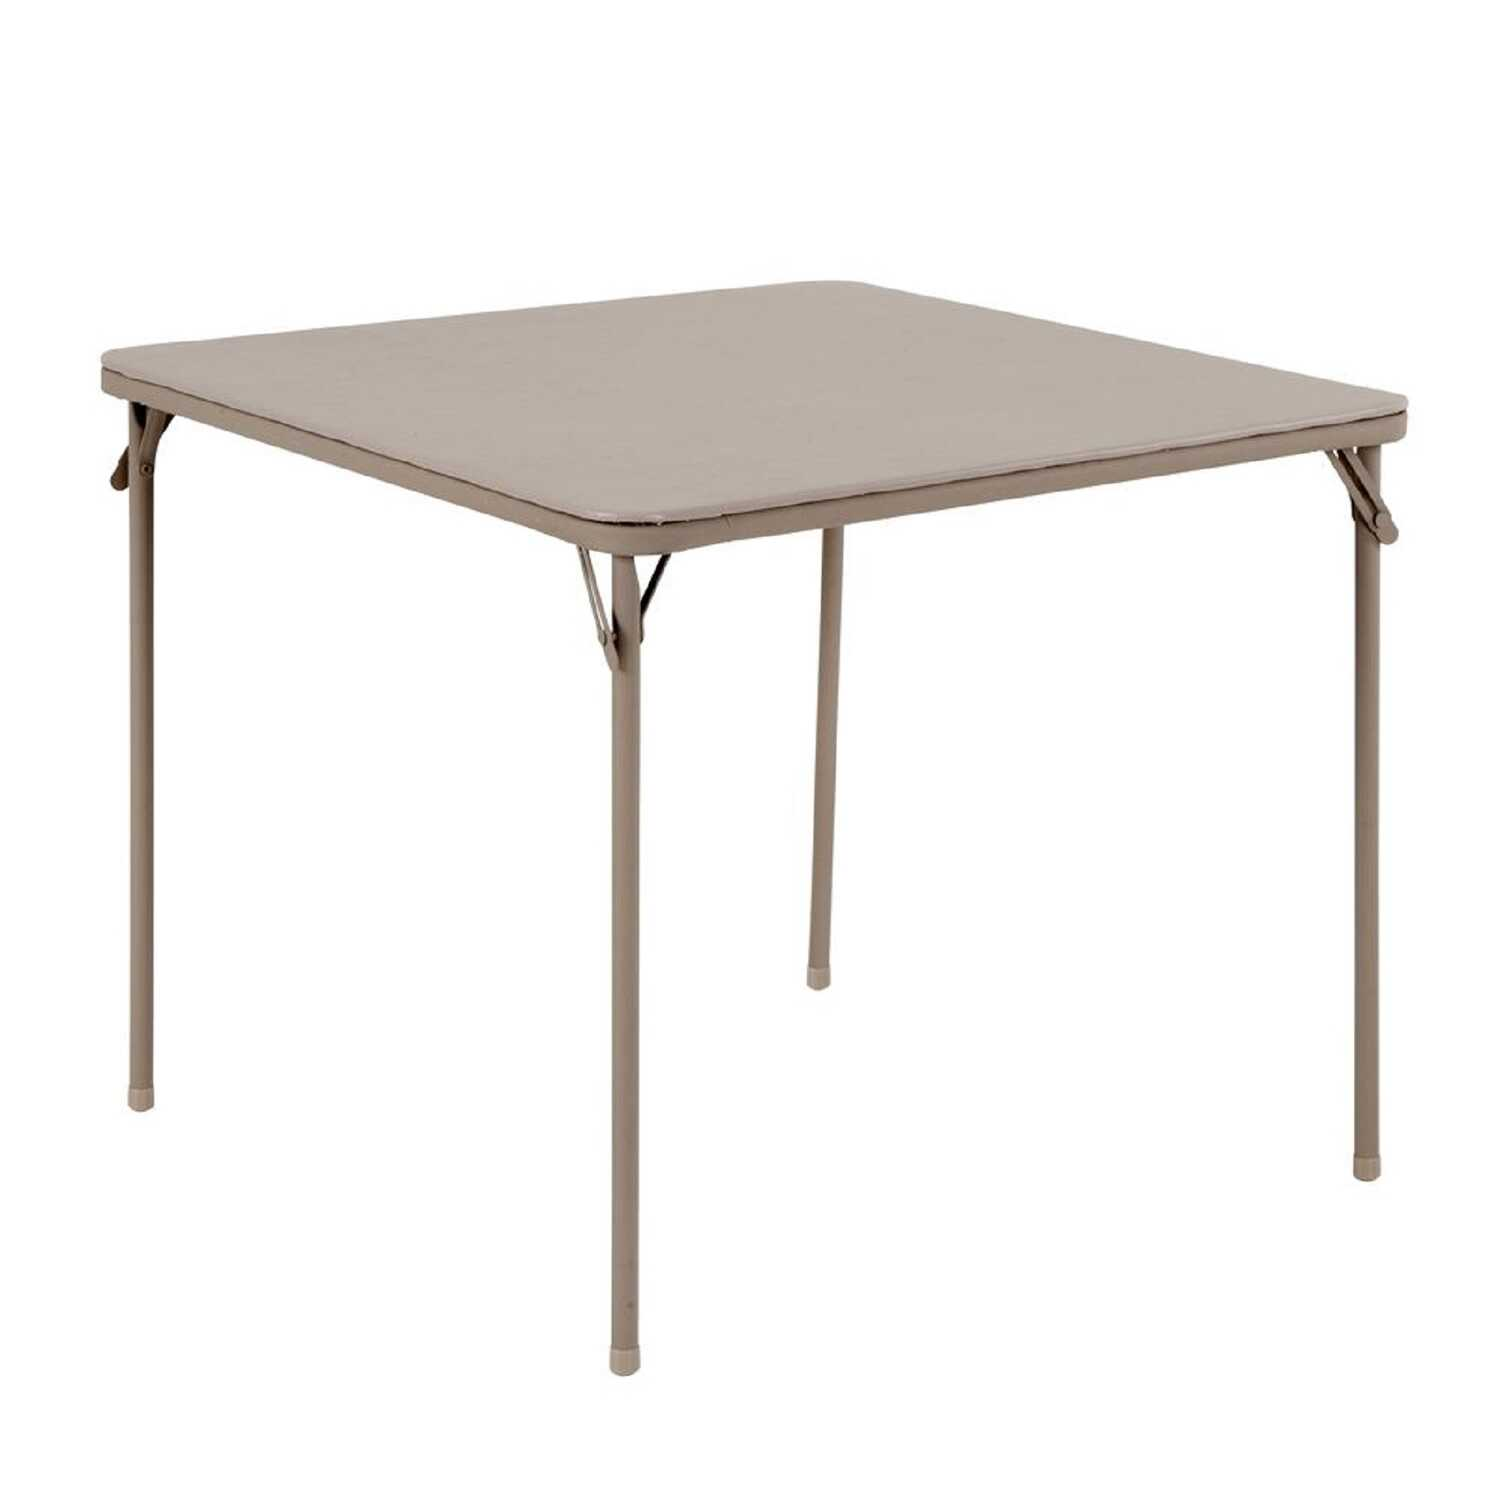 Cosco  33-3/4 in. W x 33-3/4 in. L x 28 in. H Square  Folding Table